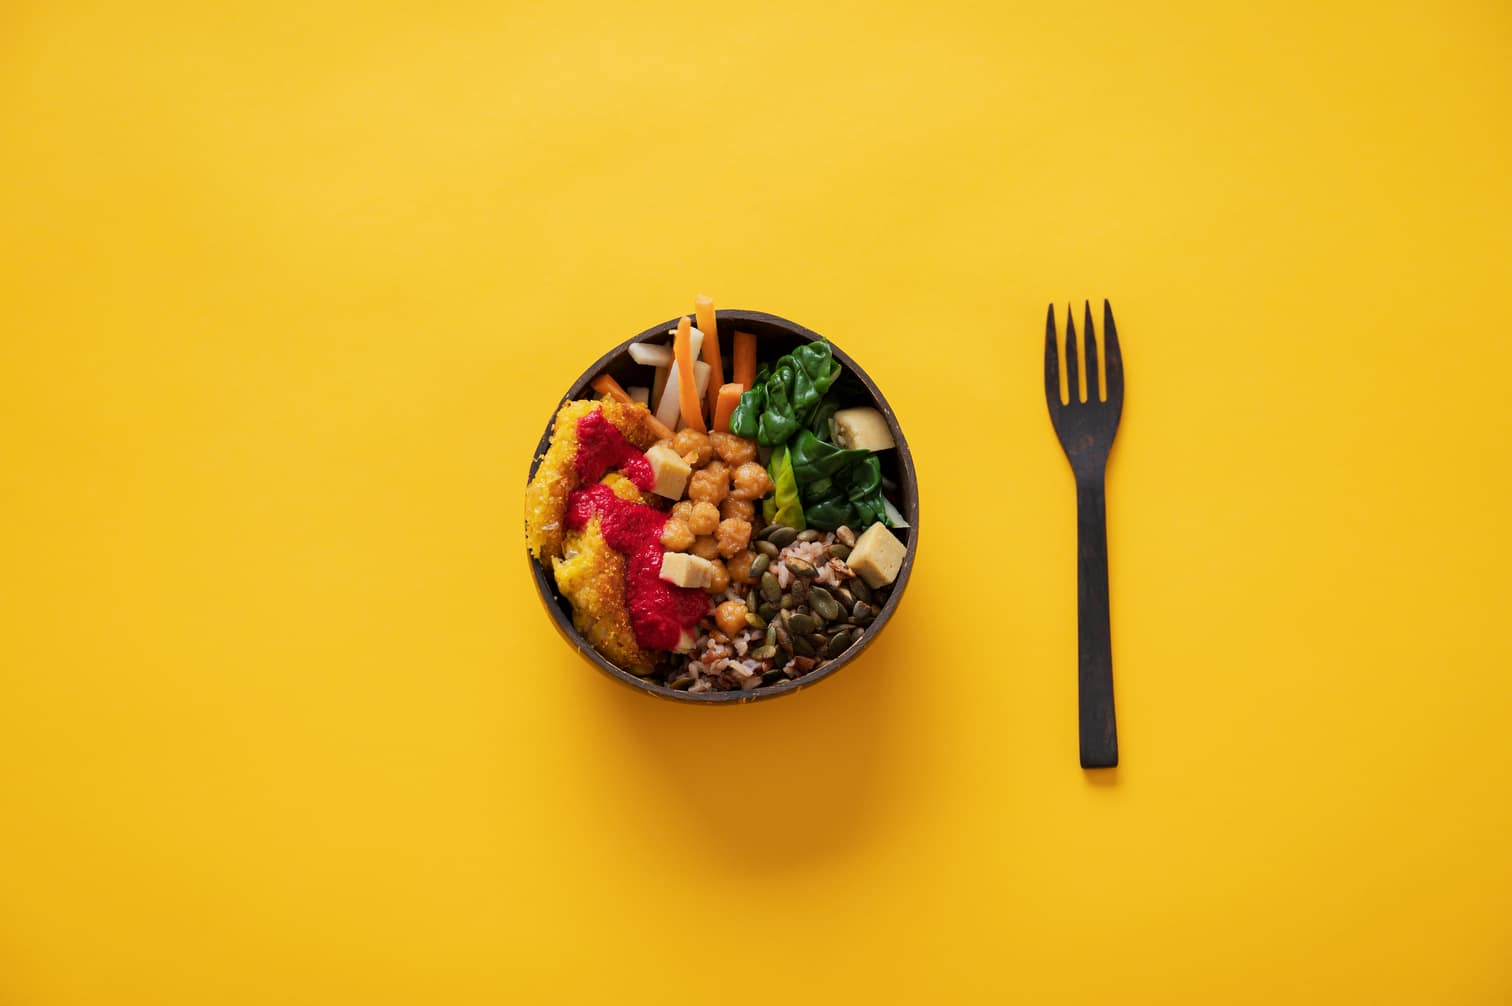 nutritious-vegan-meal-alignthoughts